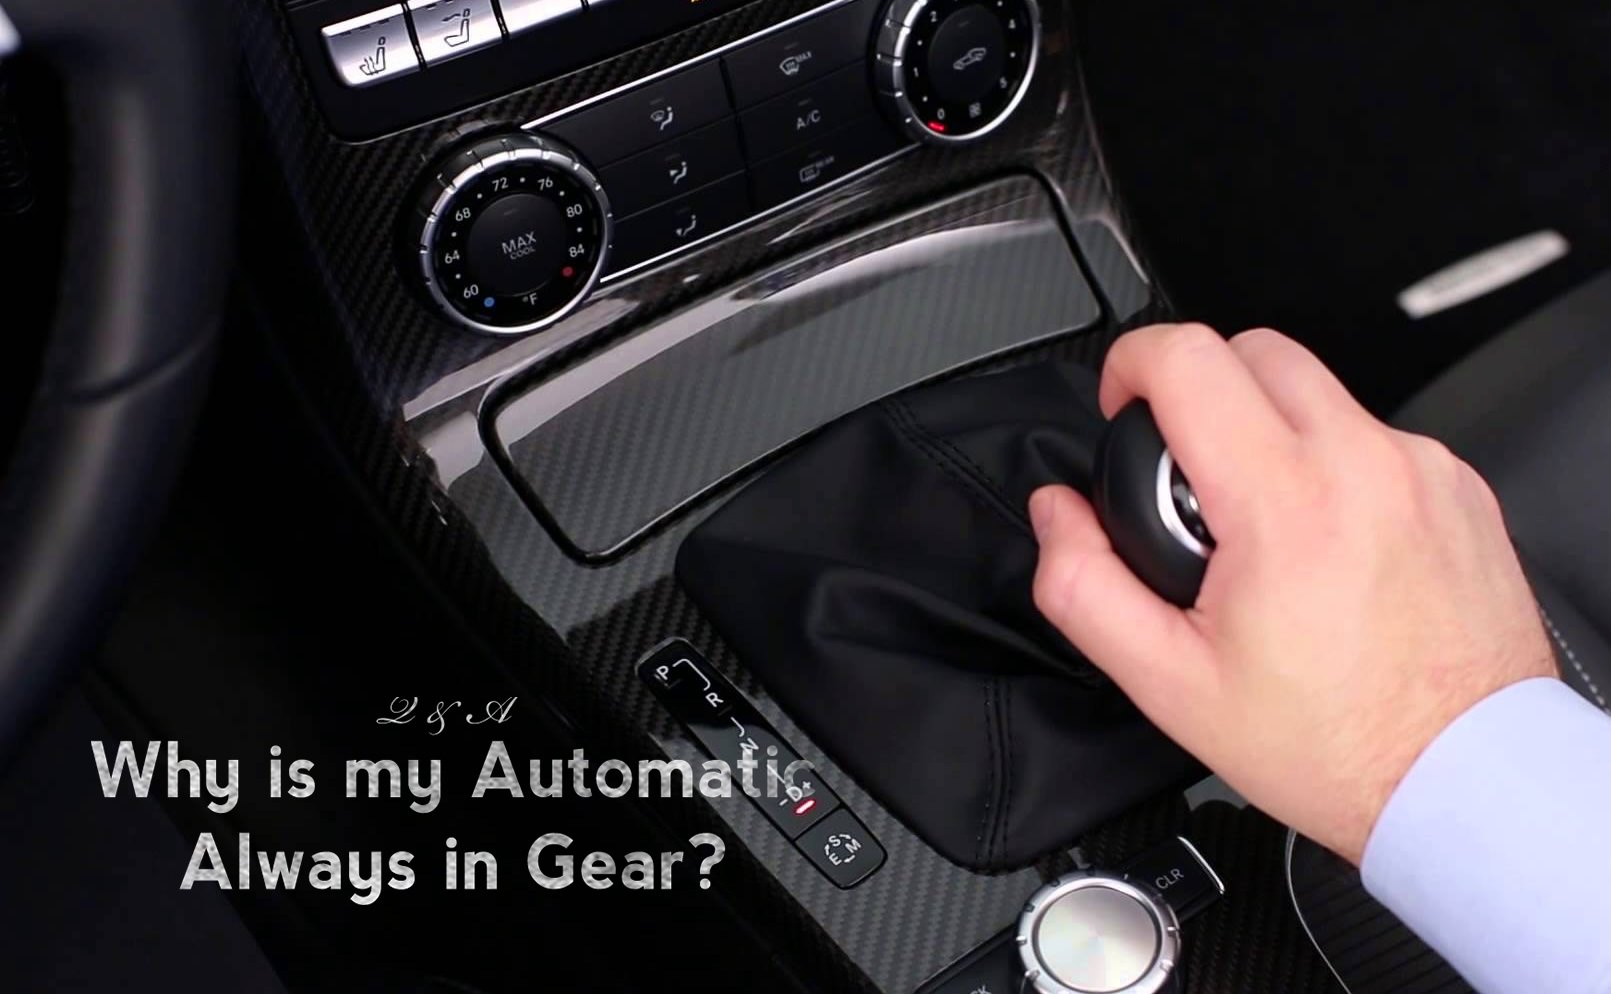 Q&A: Why is My Automatic Always in Gear?